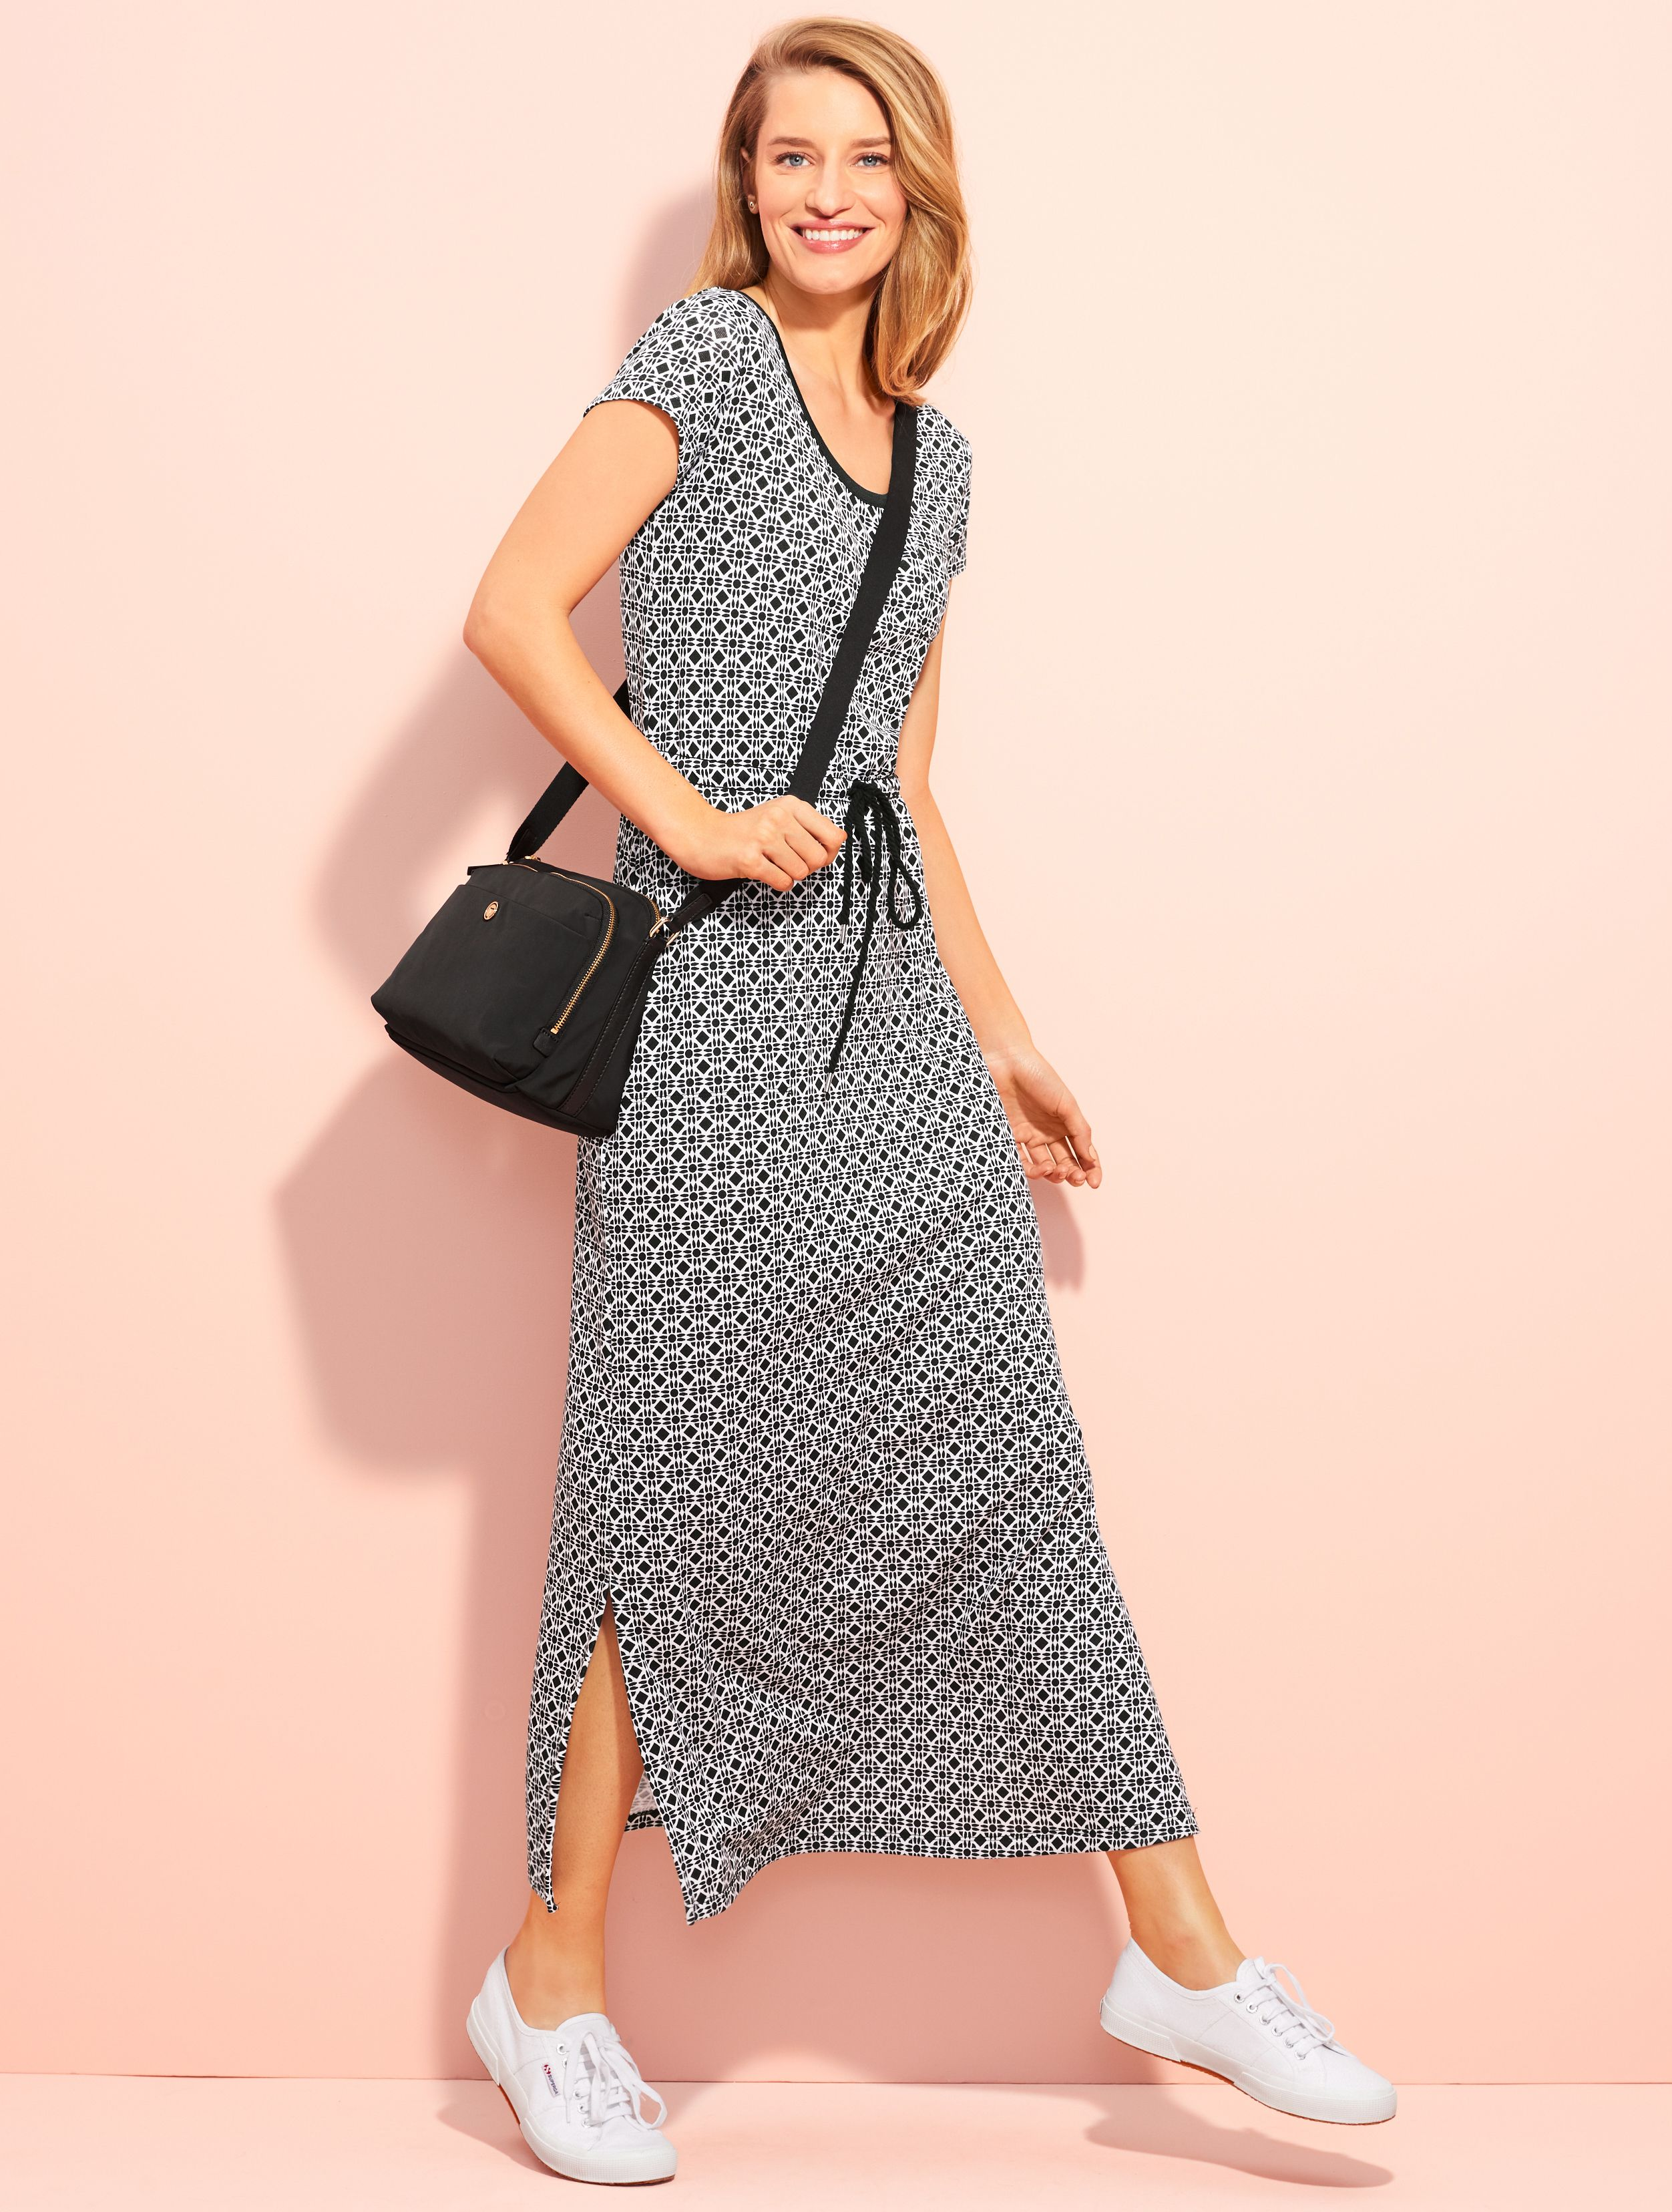 Sophisticated Simplicity At Its Best This Casual Dress Is Versatile Enough To Wear All Season Long Pair With Our Spe Jersey Dress Dresses Dress With Sneakers [ 3312 x 2504 Pixel ]